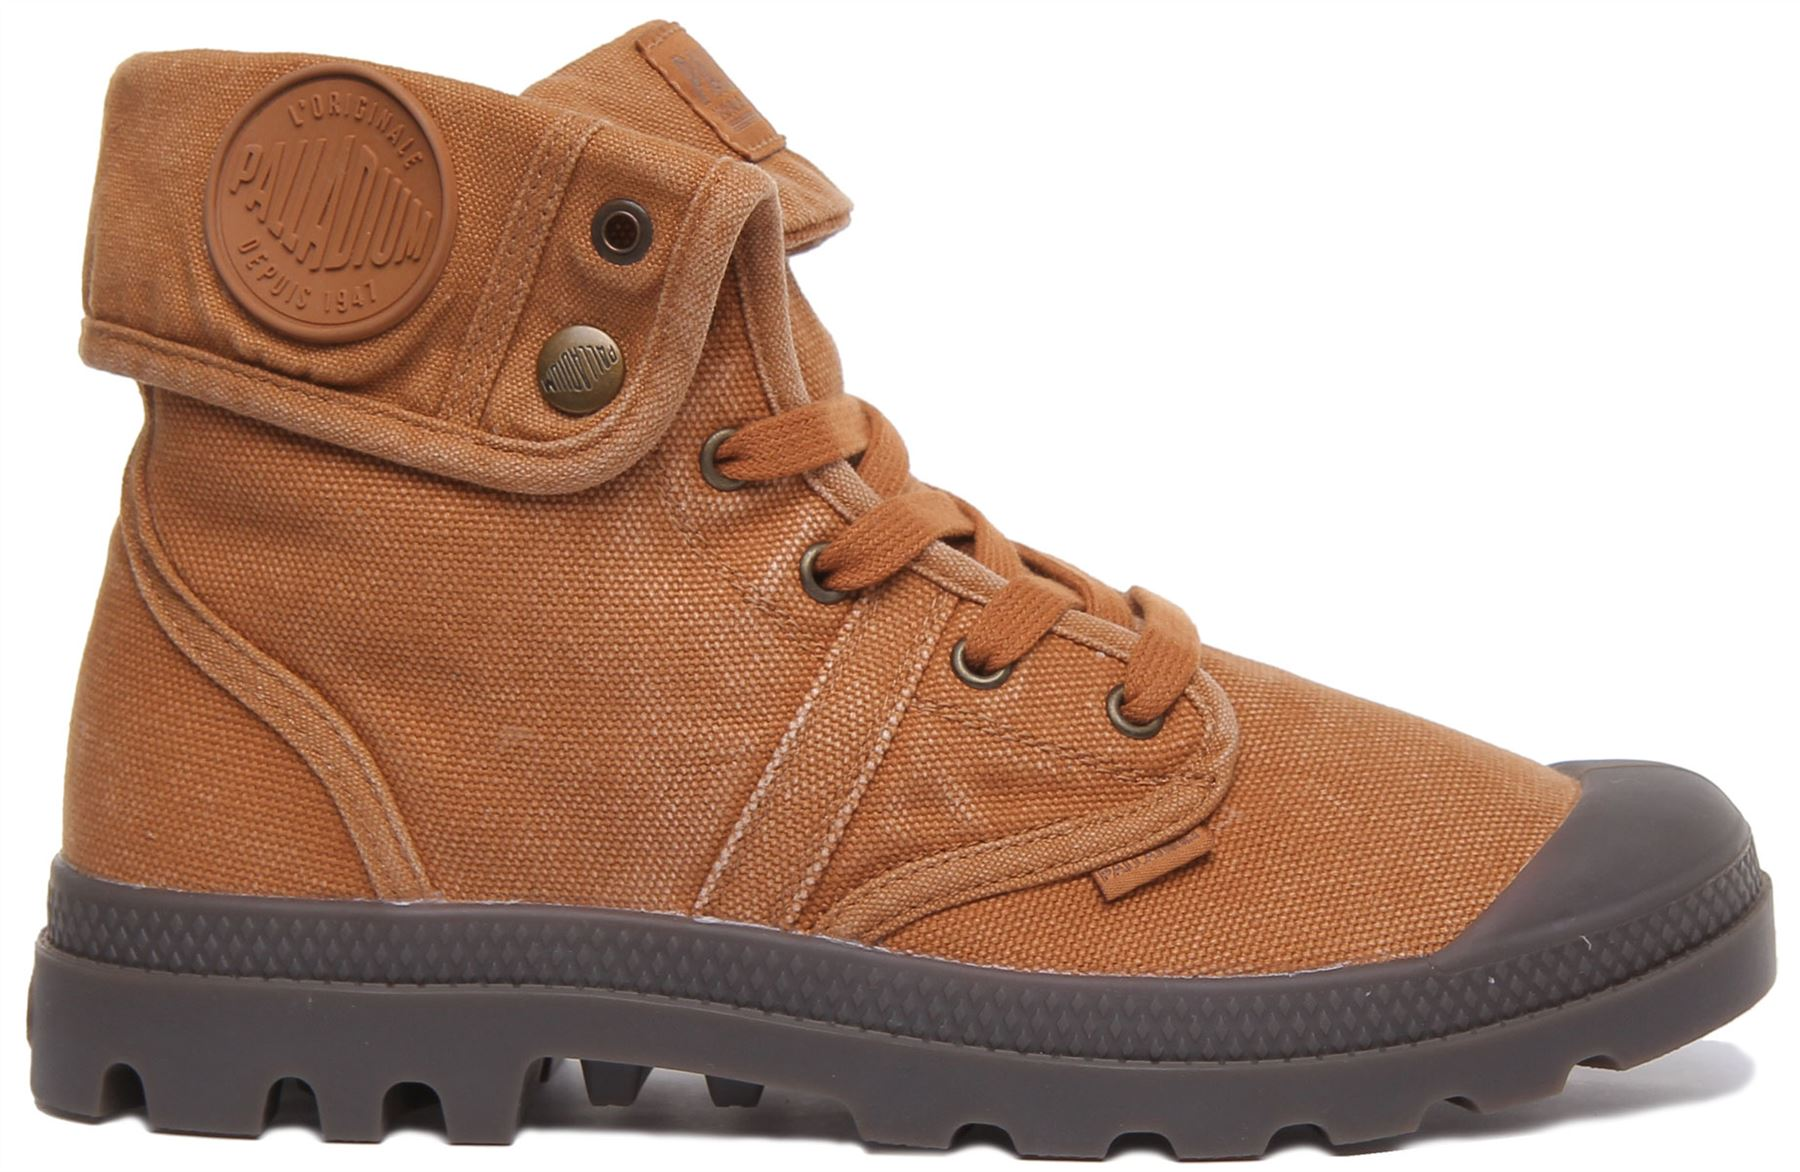 miniature 7 - Palladium Pallabrouse Baggy Rust Bottines Us Baggy Washed Taille UK 6 - 12